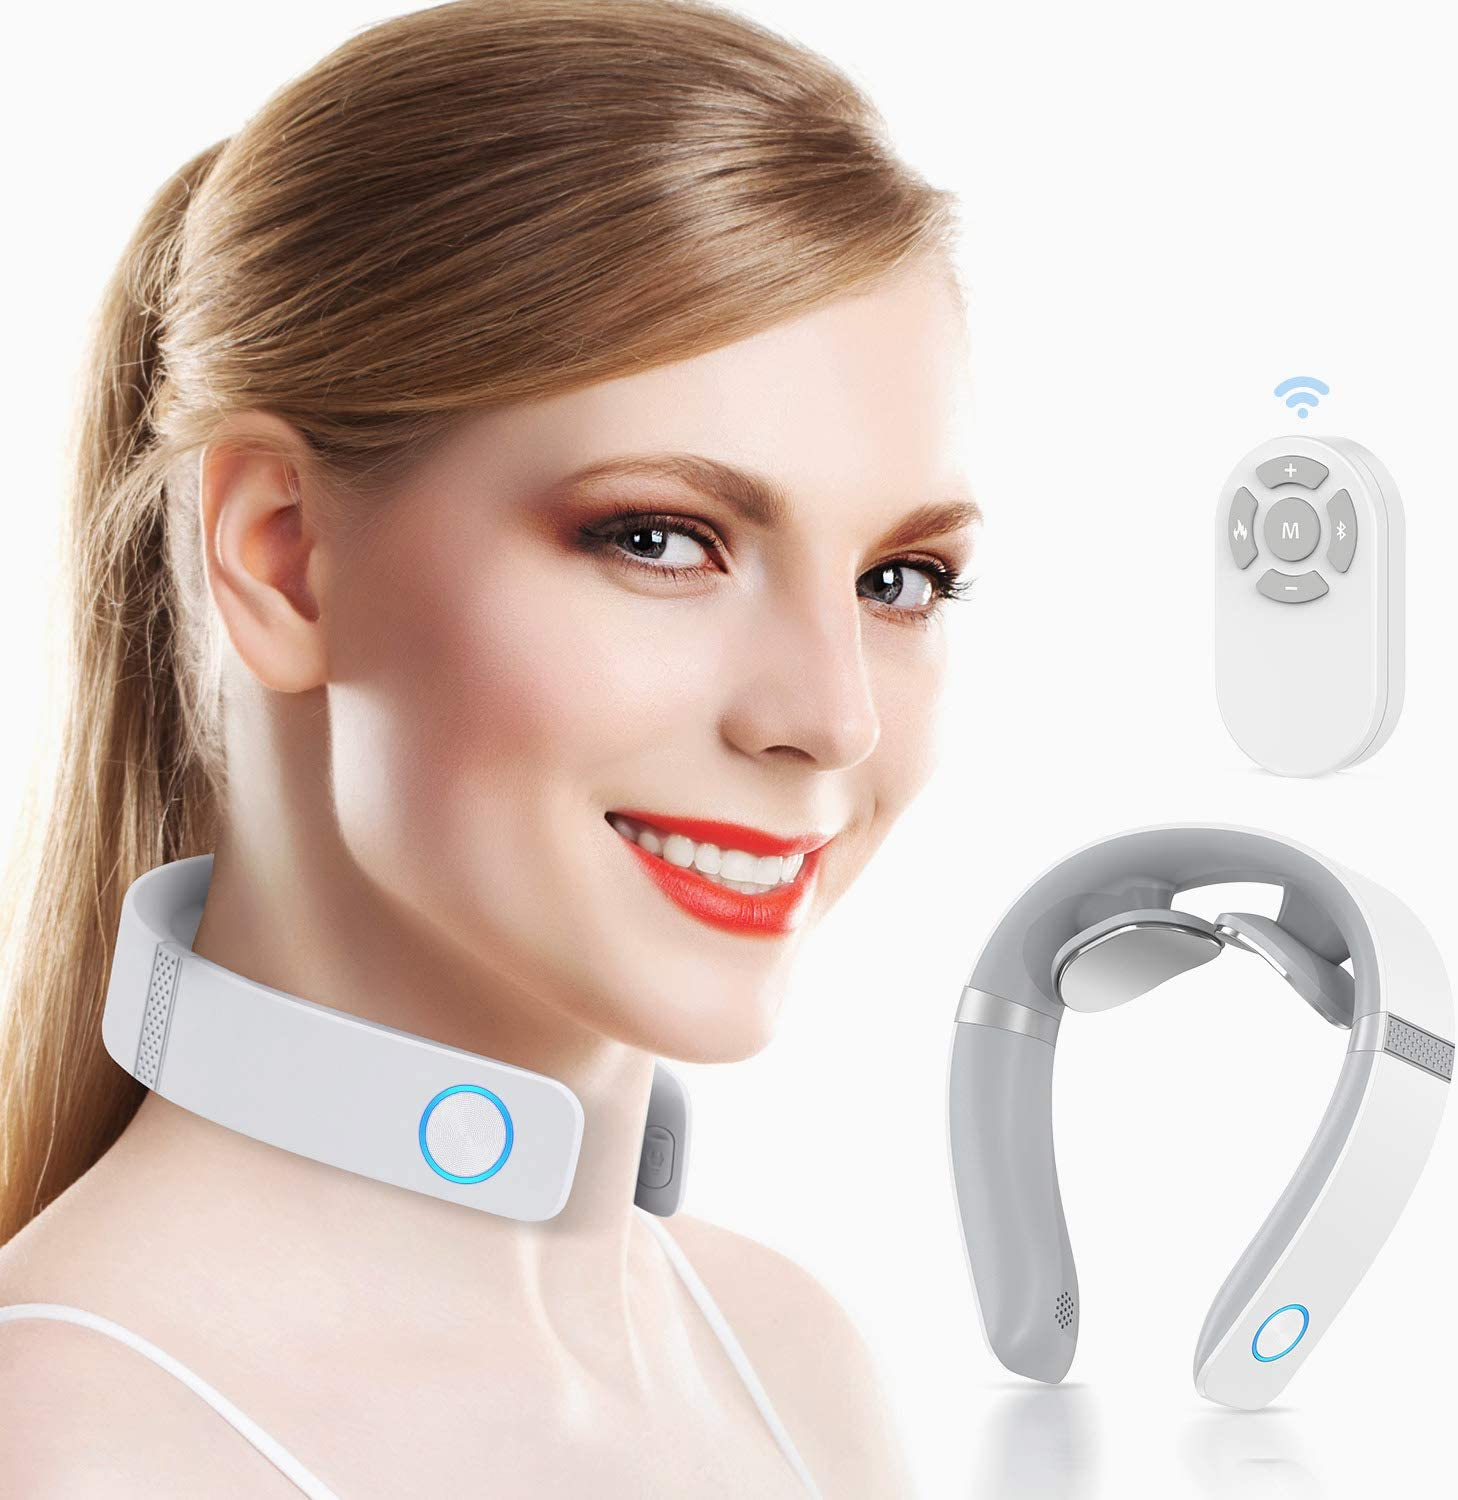 Amazon.com: HOMIEE Smart Neck Massager with Heat, 6 Modes, 16 Levels of  Intensity to Relax Neck, Remote Control, Voice Prompts, USB Charging,  Portable Cordless Neck Massager for Home Office Travel Women Men: